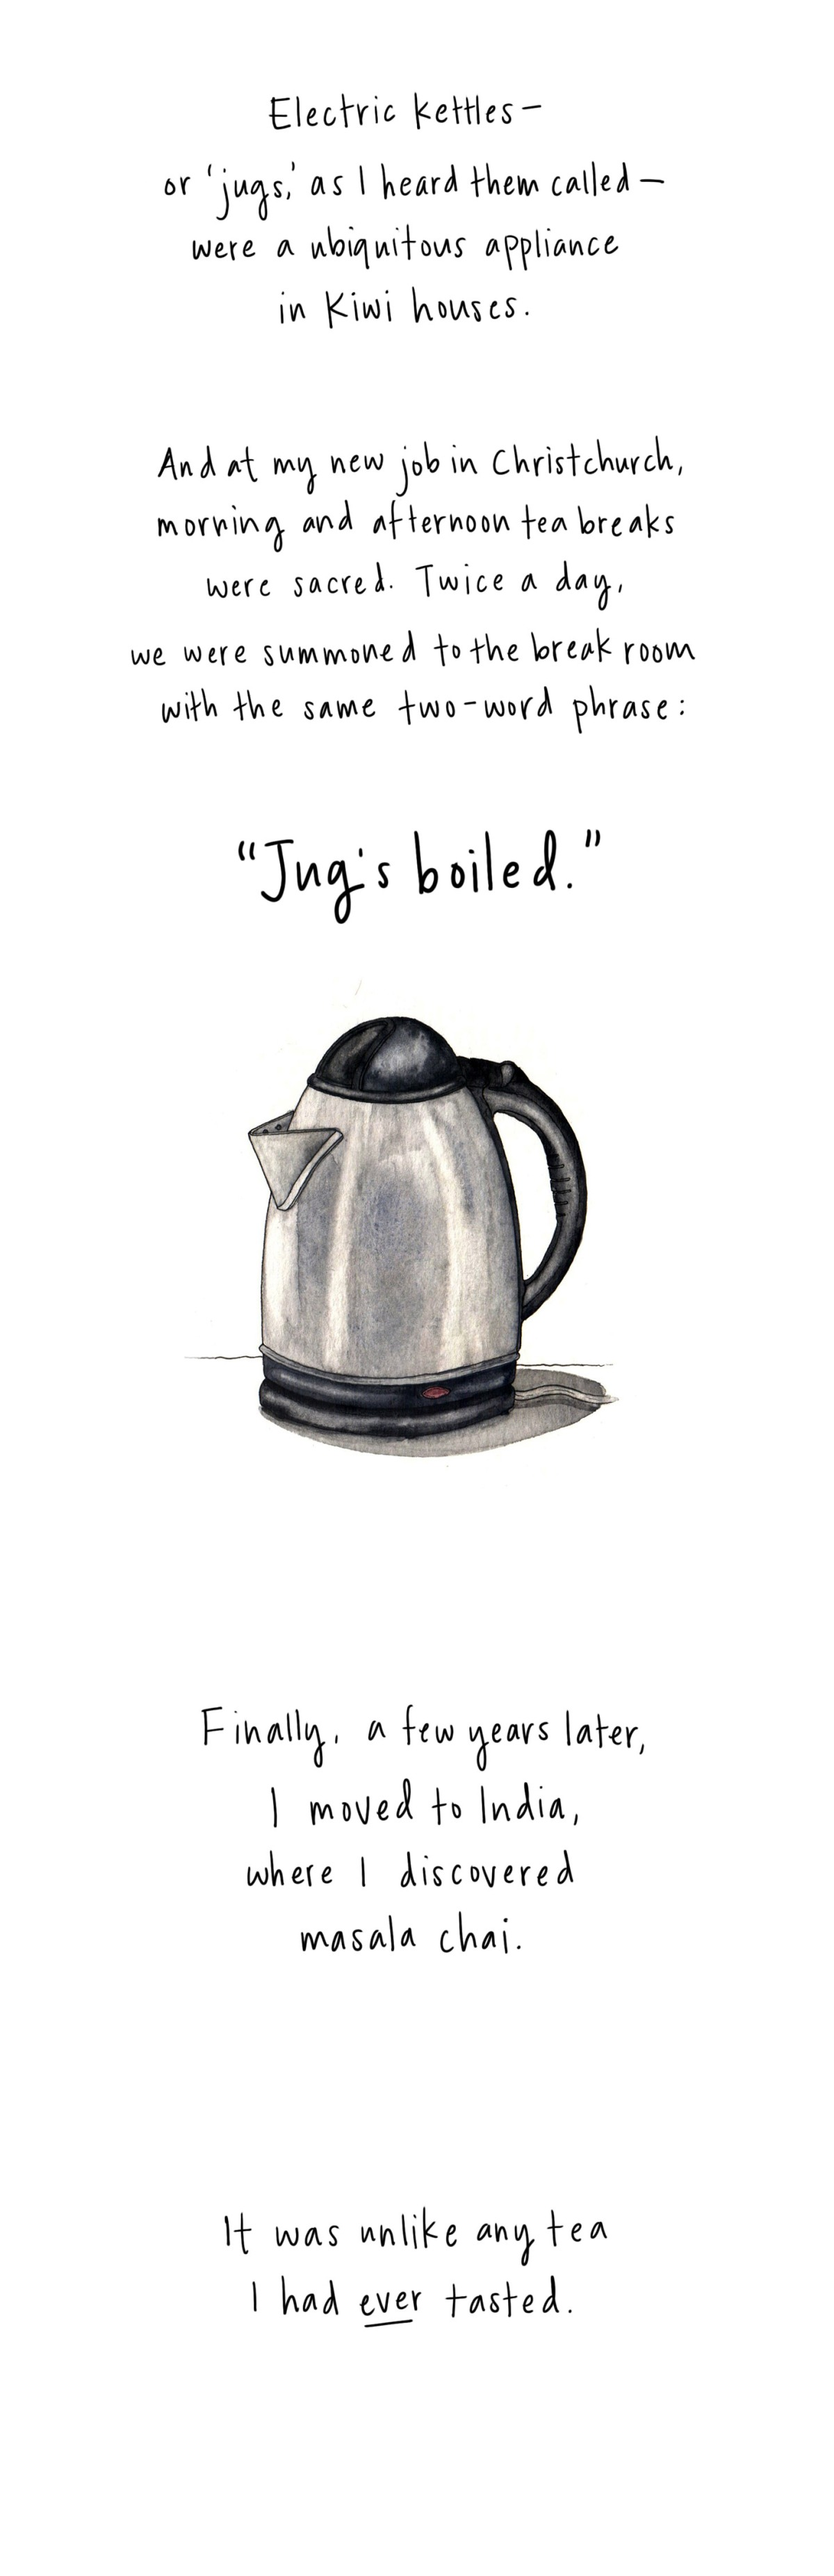 "Electric kettles — or 'jugs,' as I also heard them called — were a ubiquitous appliance in Kiwi houses. And at my new job in Christchurch, morning and afternoon tea breaks were sacred. Twice a day, we were summoned to the break room with the same two-word phrase: ""Jug's boiled."" Finally, a few years later, I moved to India, where I discovered masala chai. It was unlike any tea I had ever tasted."